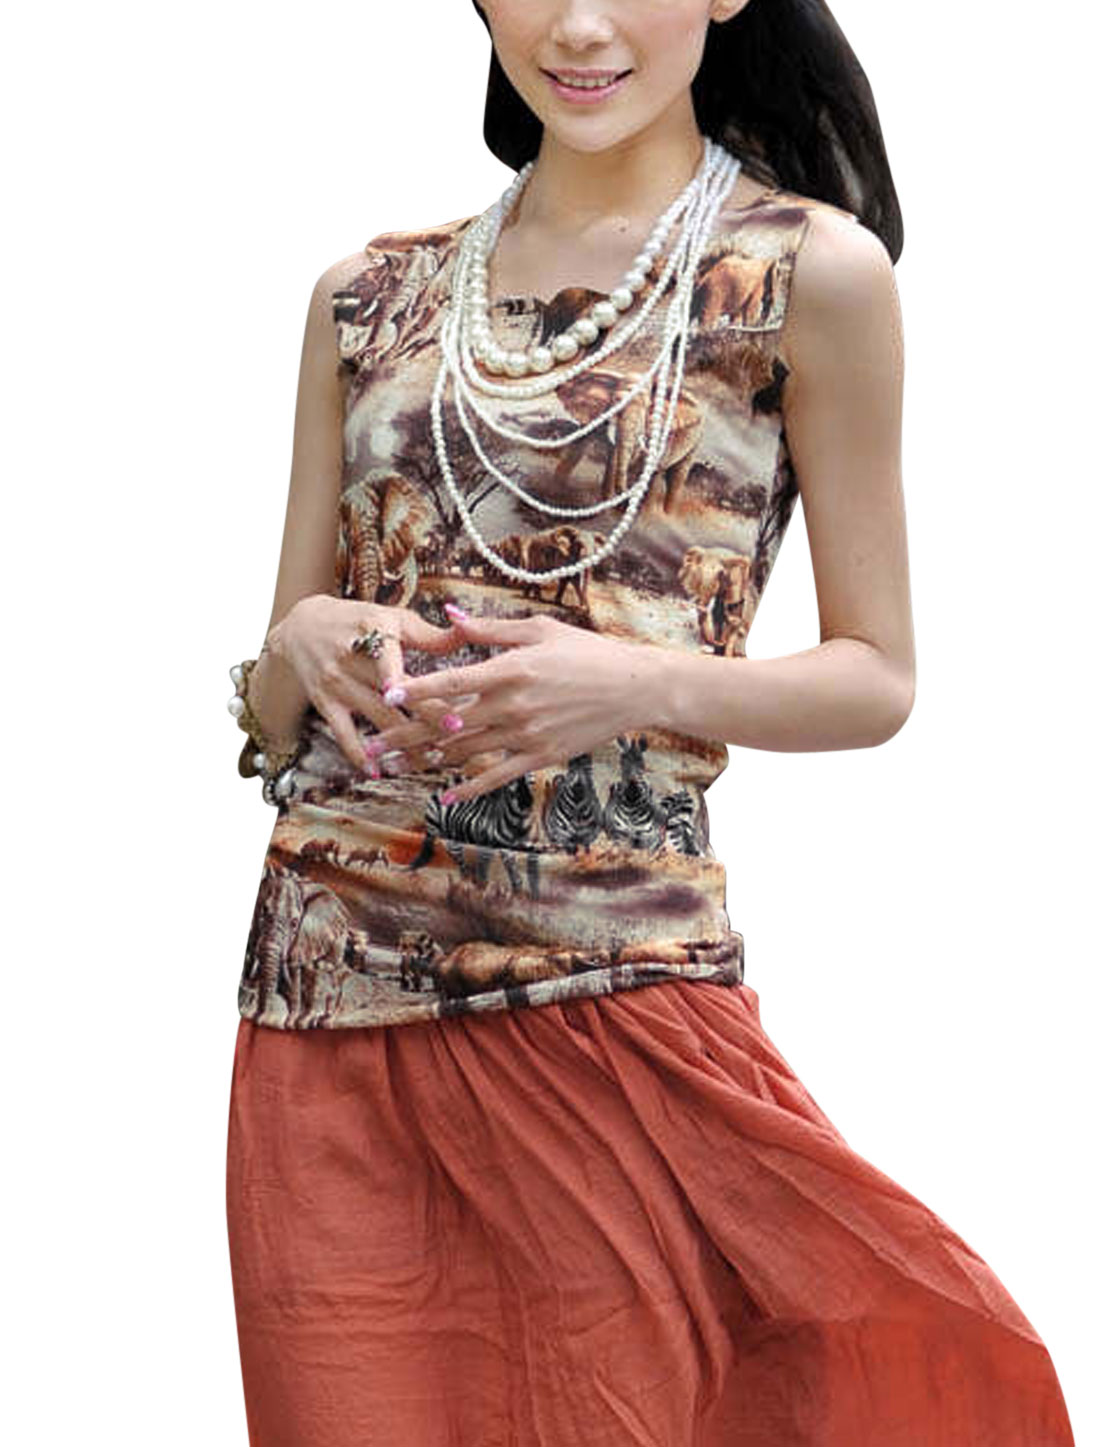 Woman's Animal Prints Sleeveless Scalloped Neckline Tank Top Multicolor XS